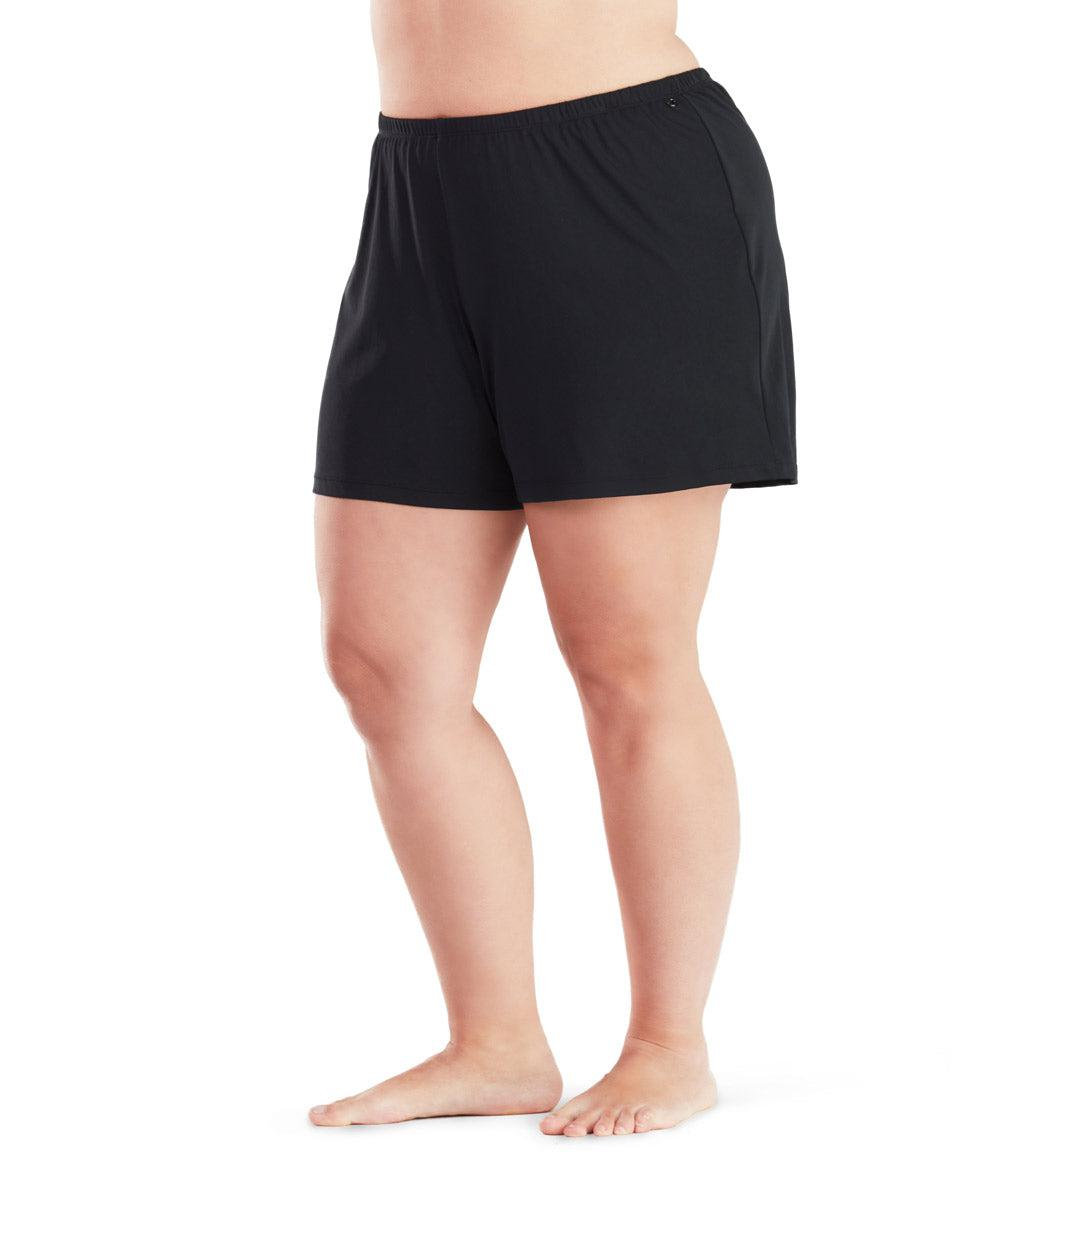 fc2c1ca7934 plus size swimwear short black